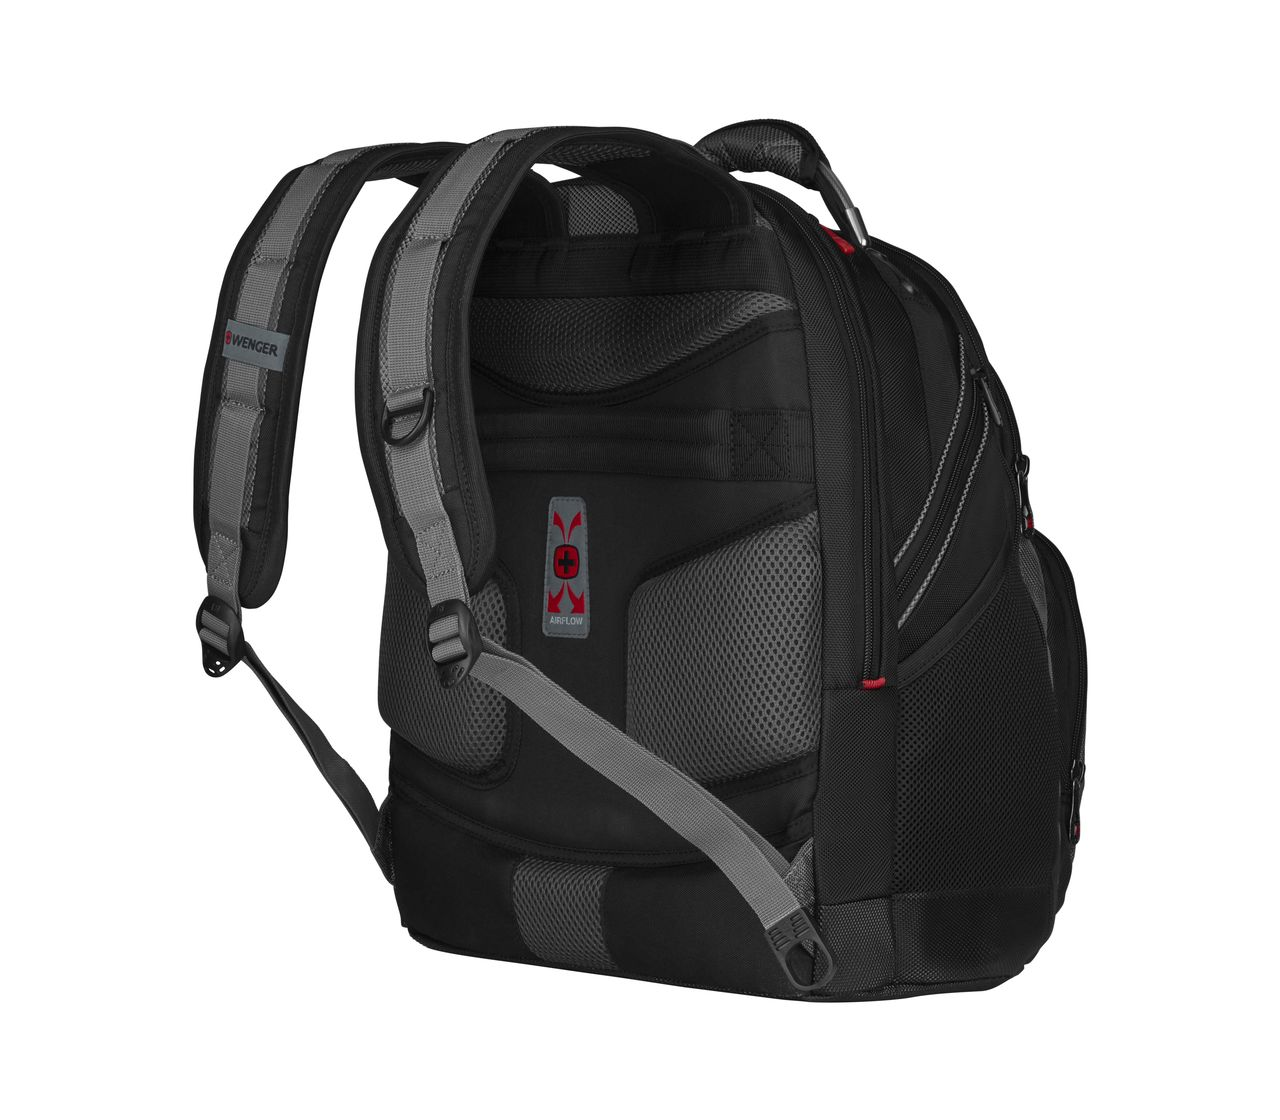 Wenger Synergy Backpack Black//Grey Gray GA-7305-14F00